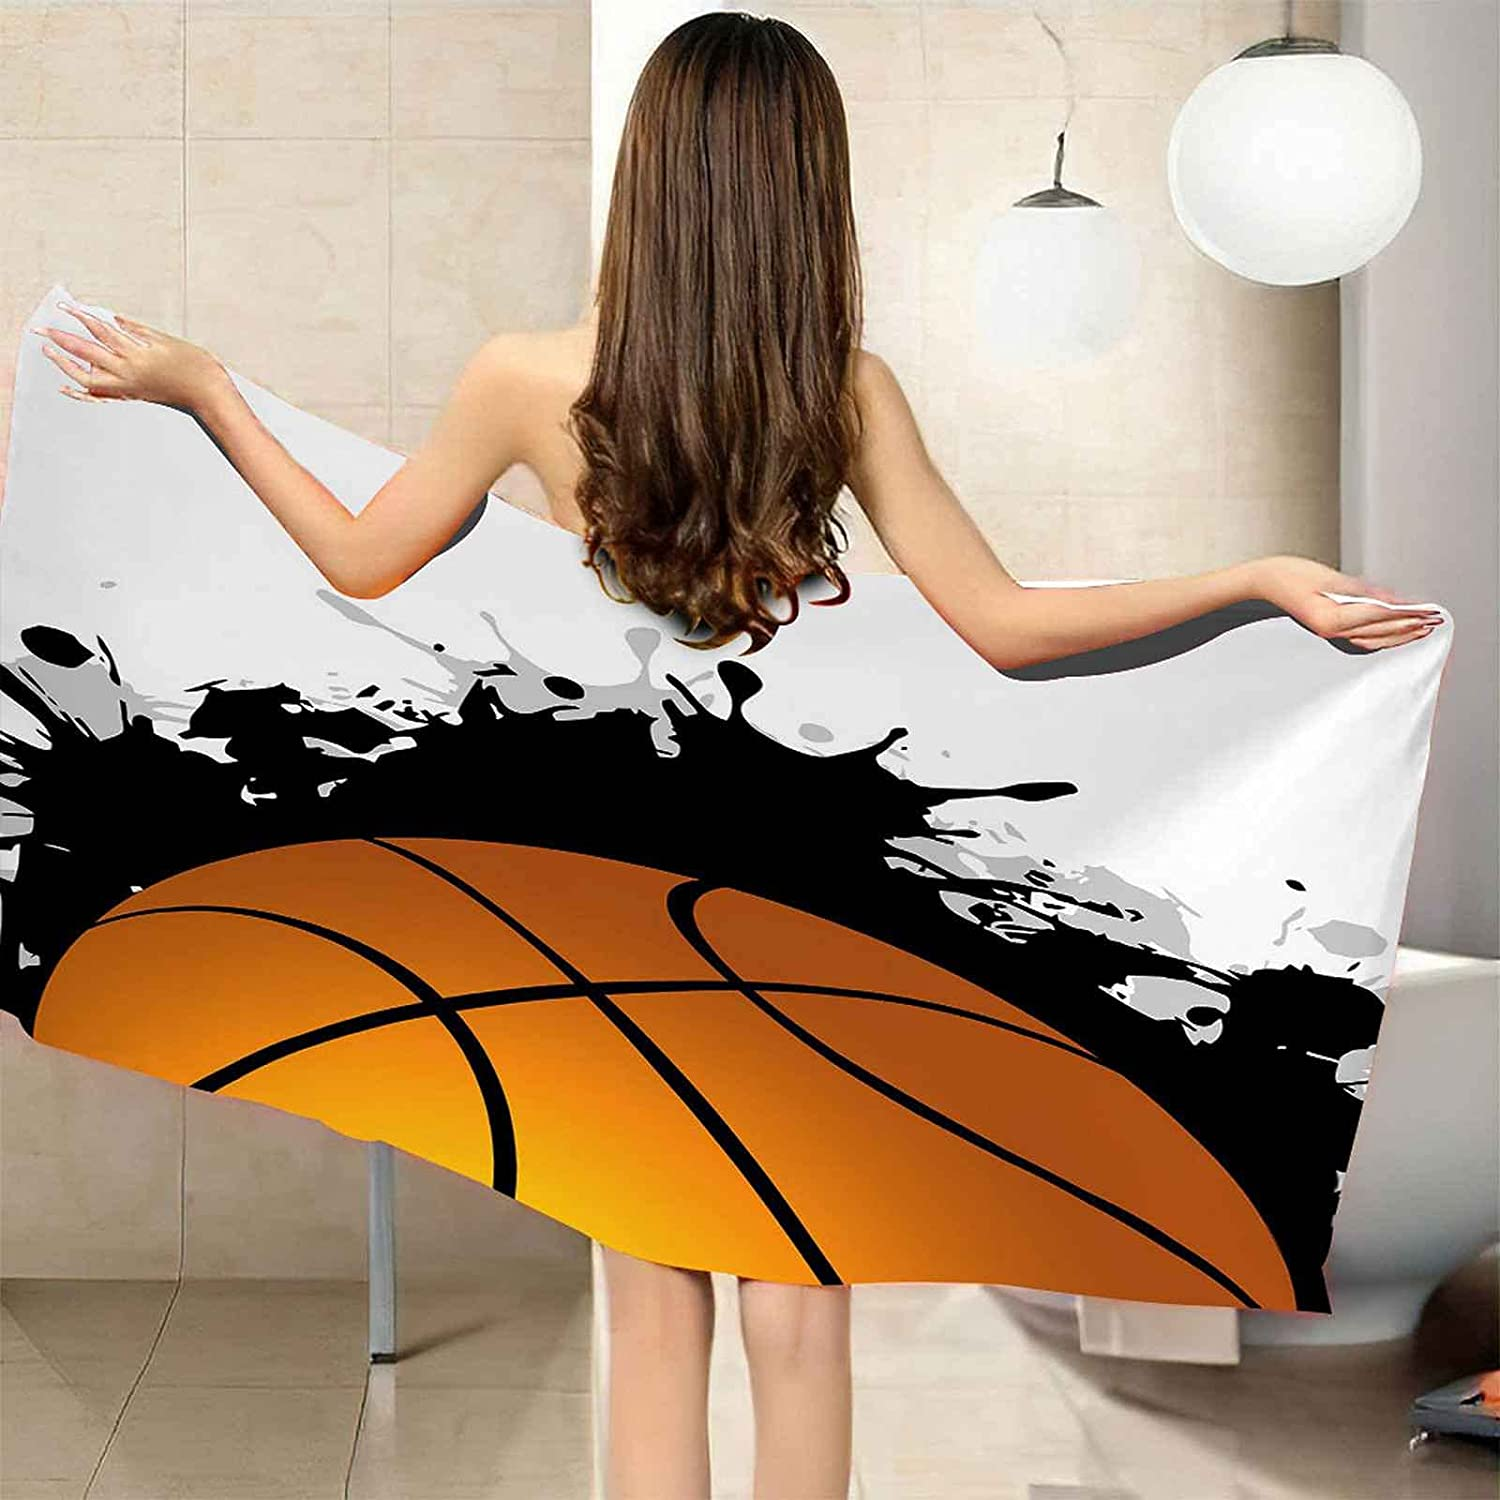 QFMMQI 3D Printing At the price of surprise Microfiber Personalized Towels Max 50% OFF Beach Quic are